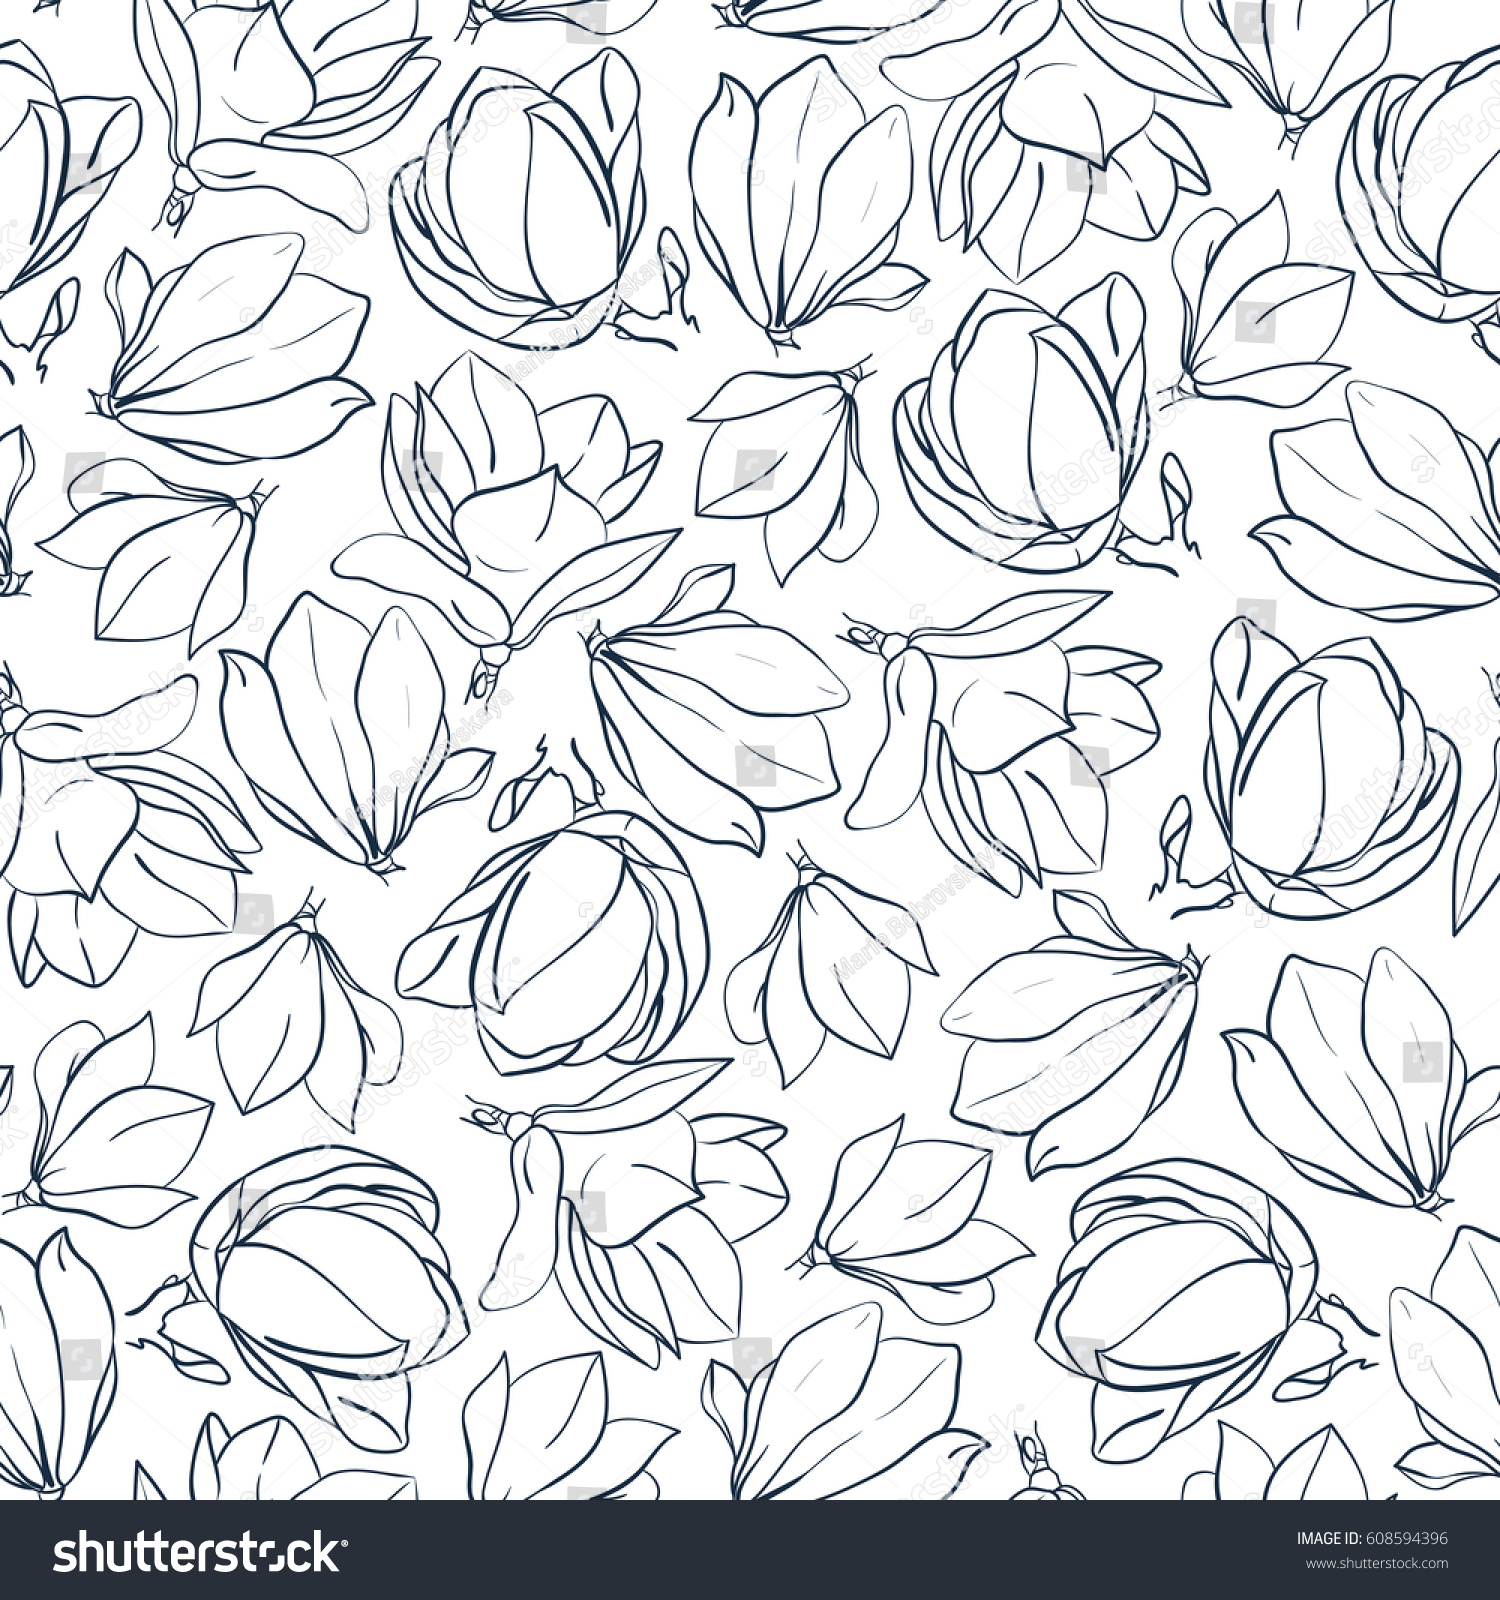 Coloring pages of flower buds - Graphic Magnolia Flowers And Buds Hand Drawn Vector Seamless Pattern Coloring Book Page Design